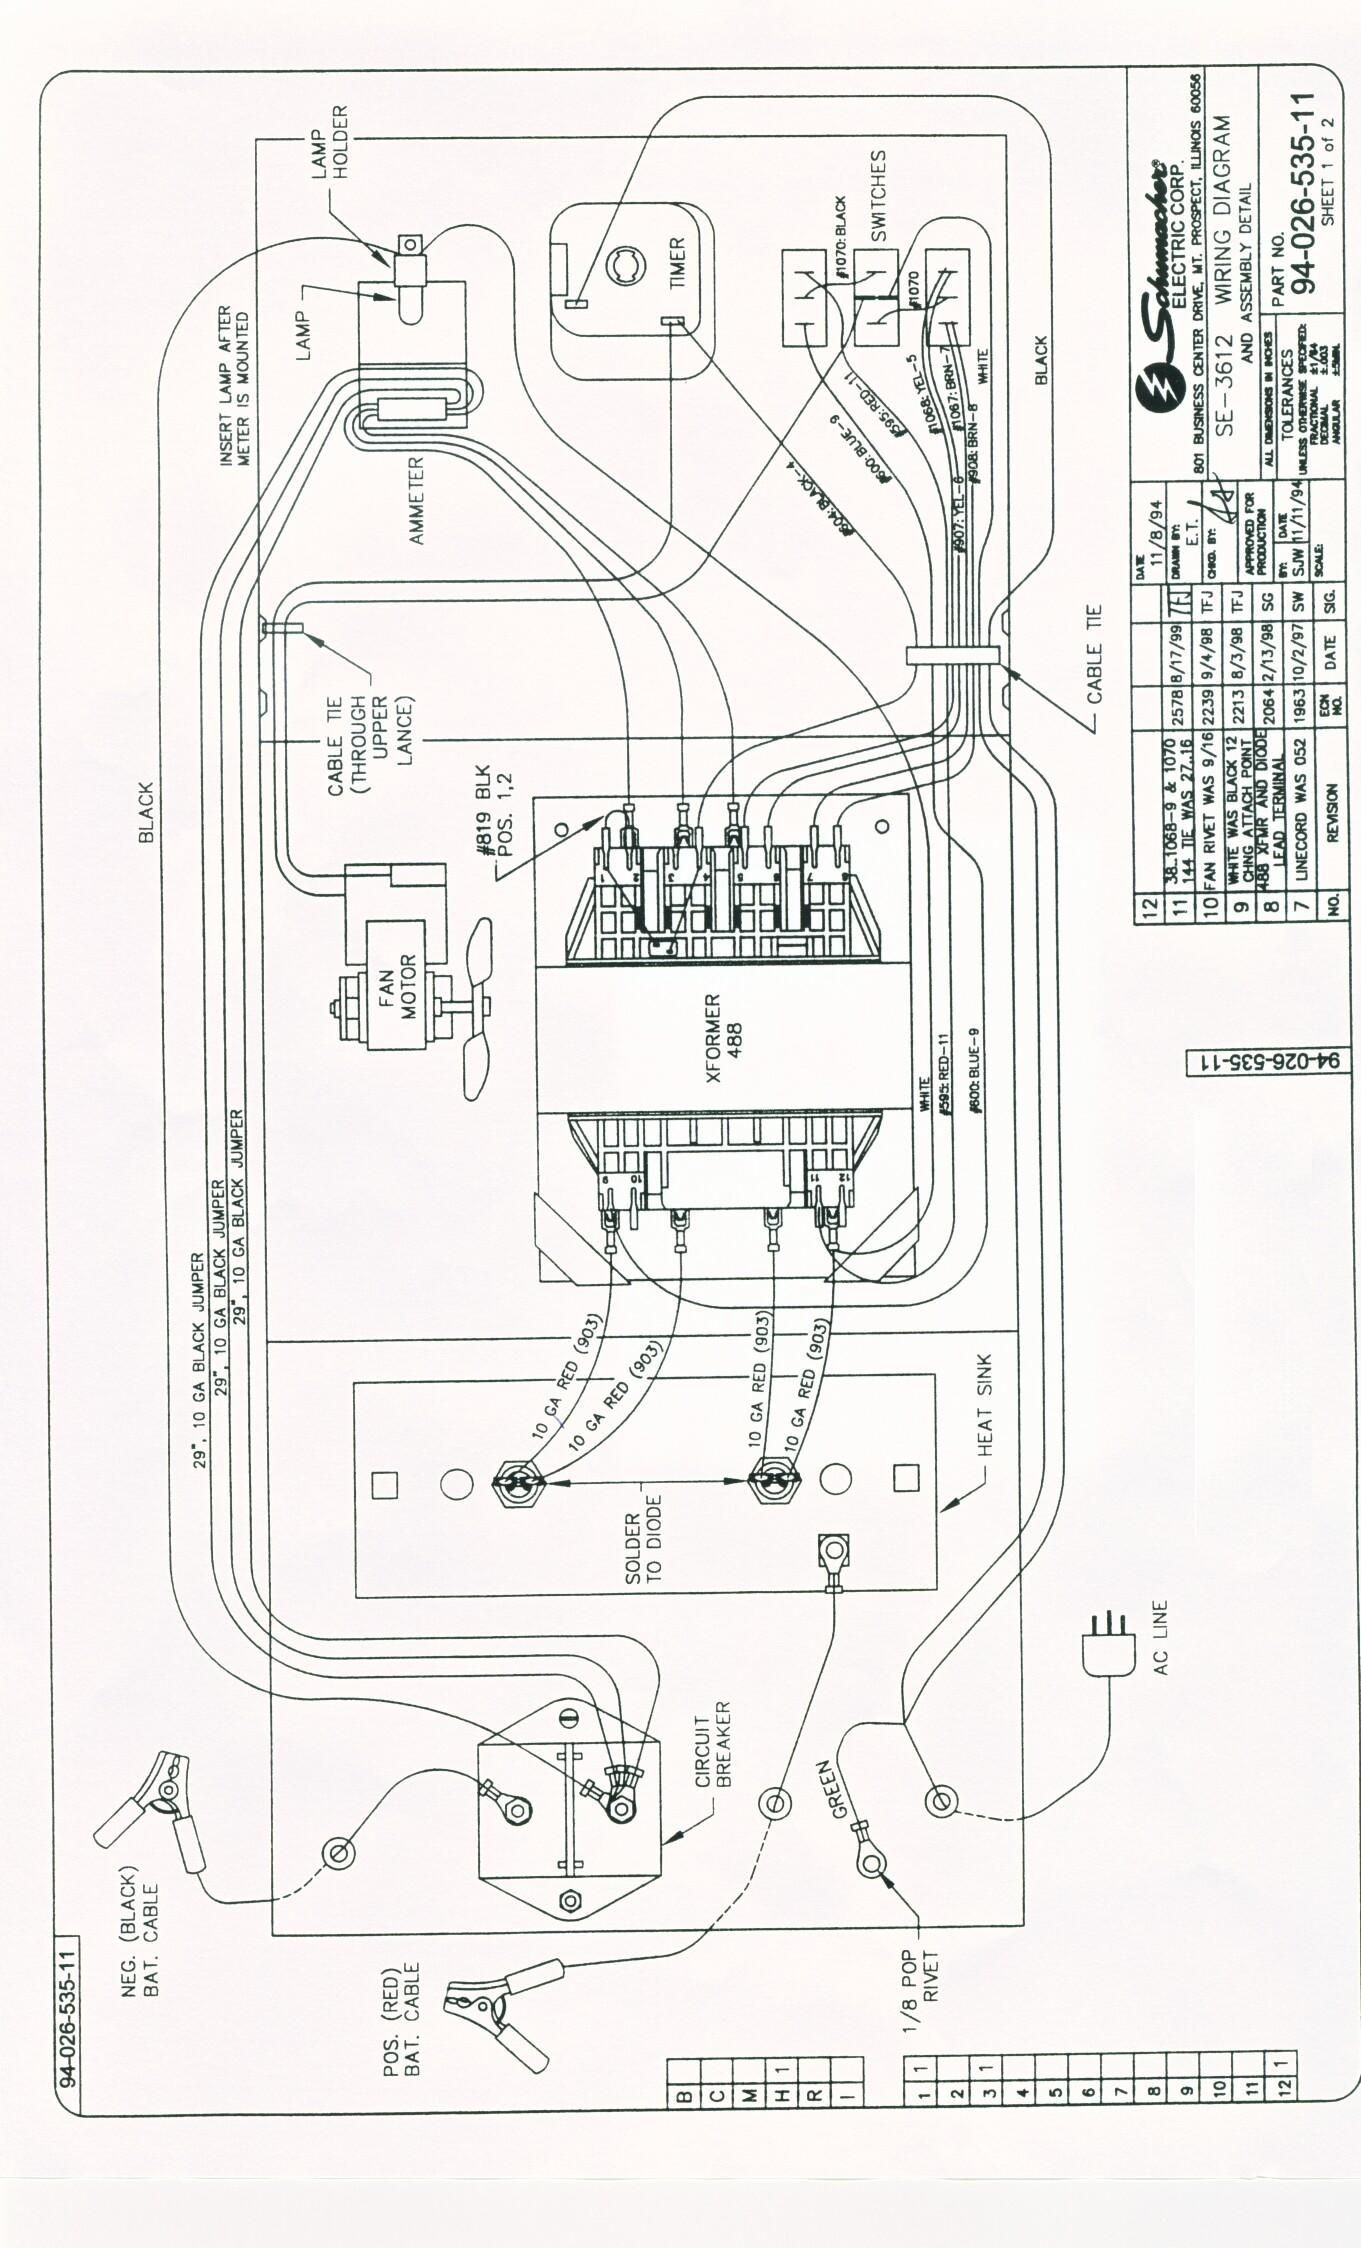 Diagram for Car Battery Charger Battery Jumper Diagram Wiring Diagram for You Of Diagram for Car Battery Charger